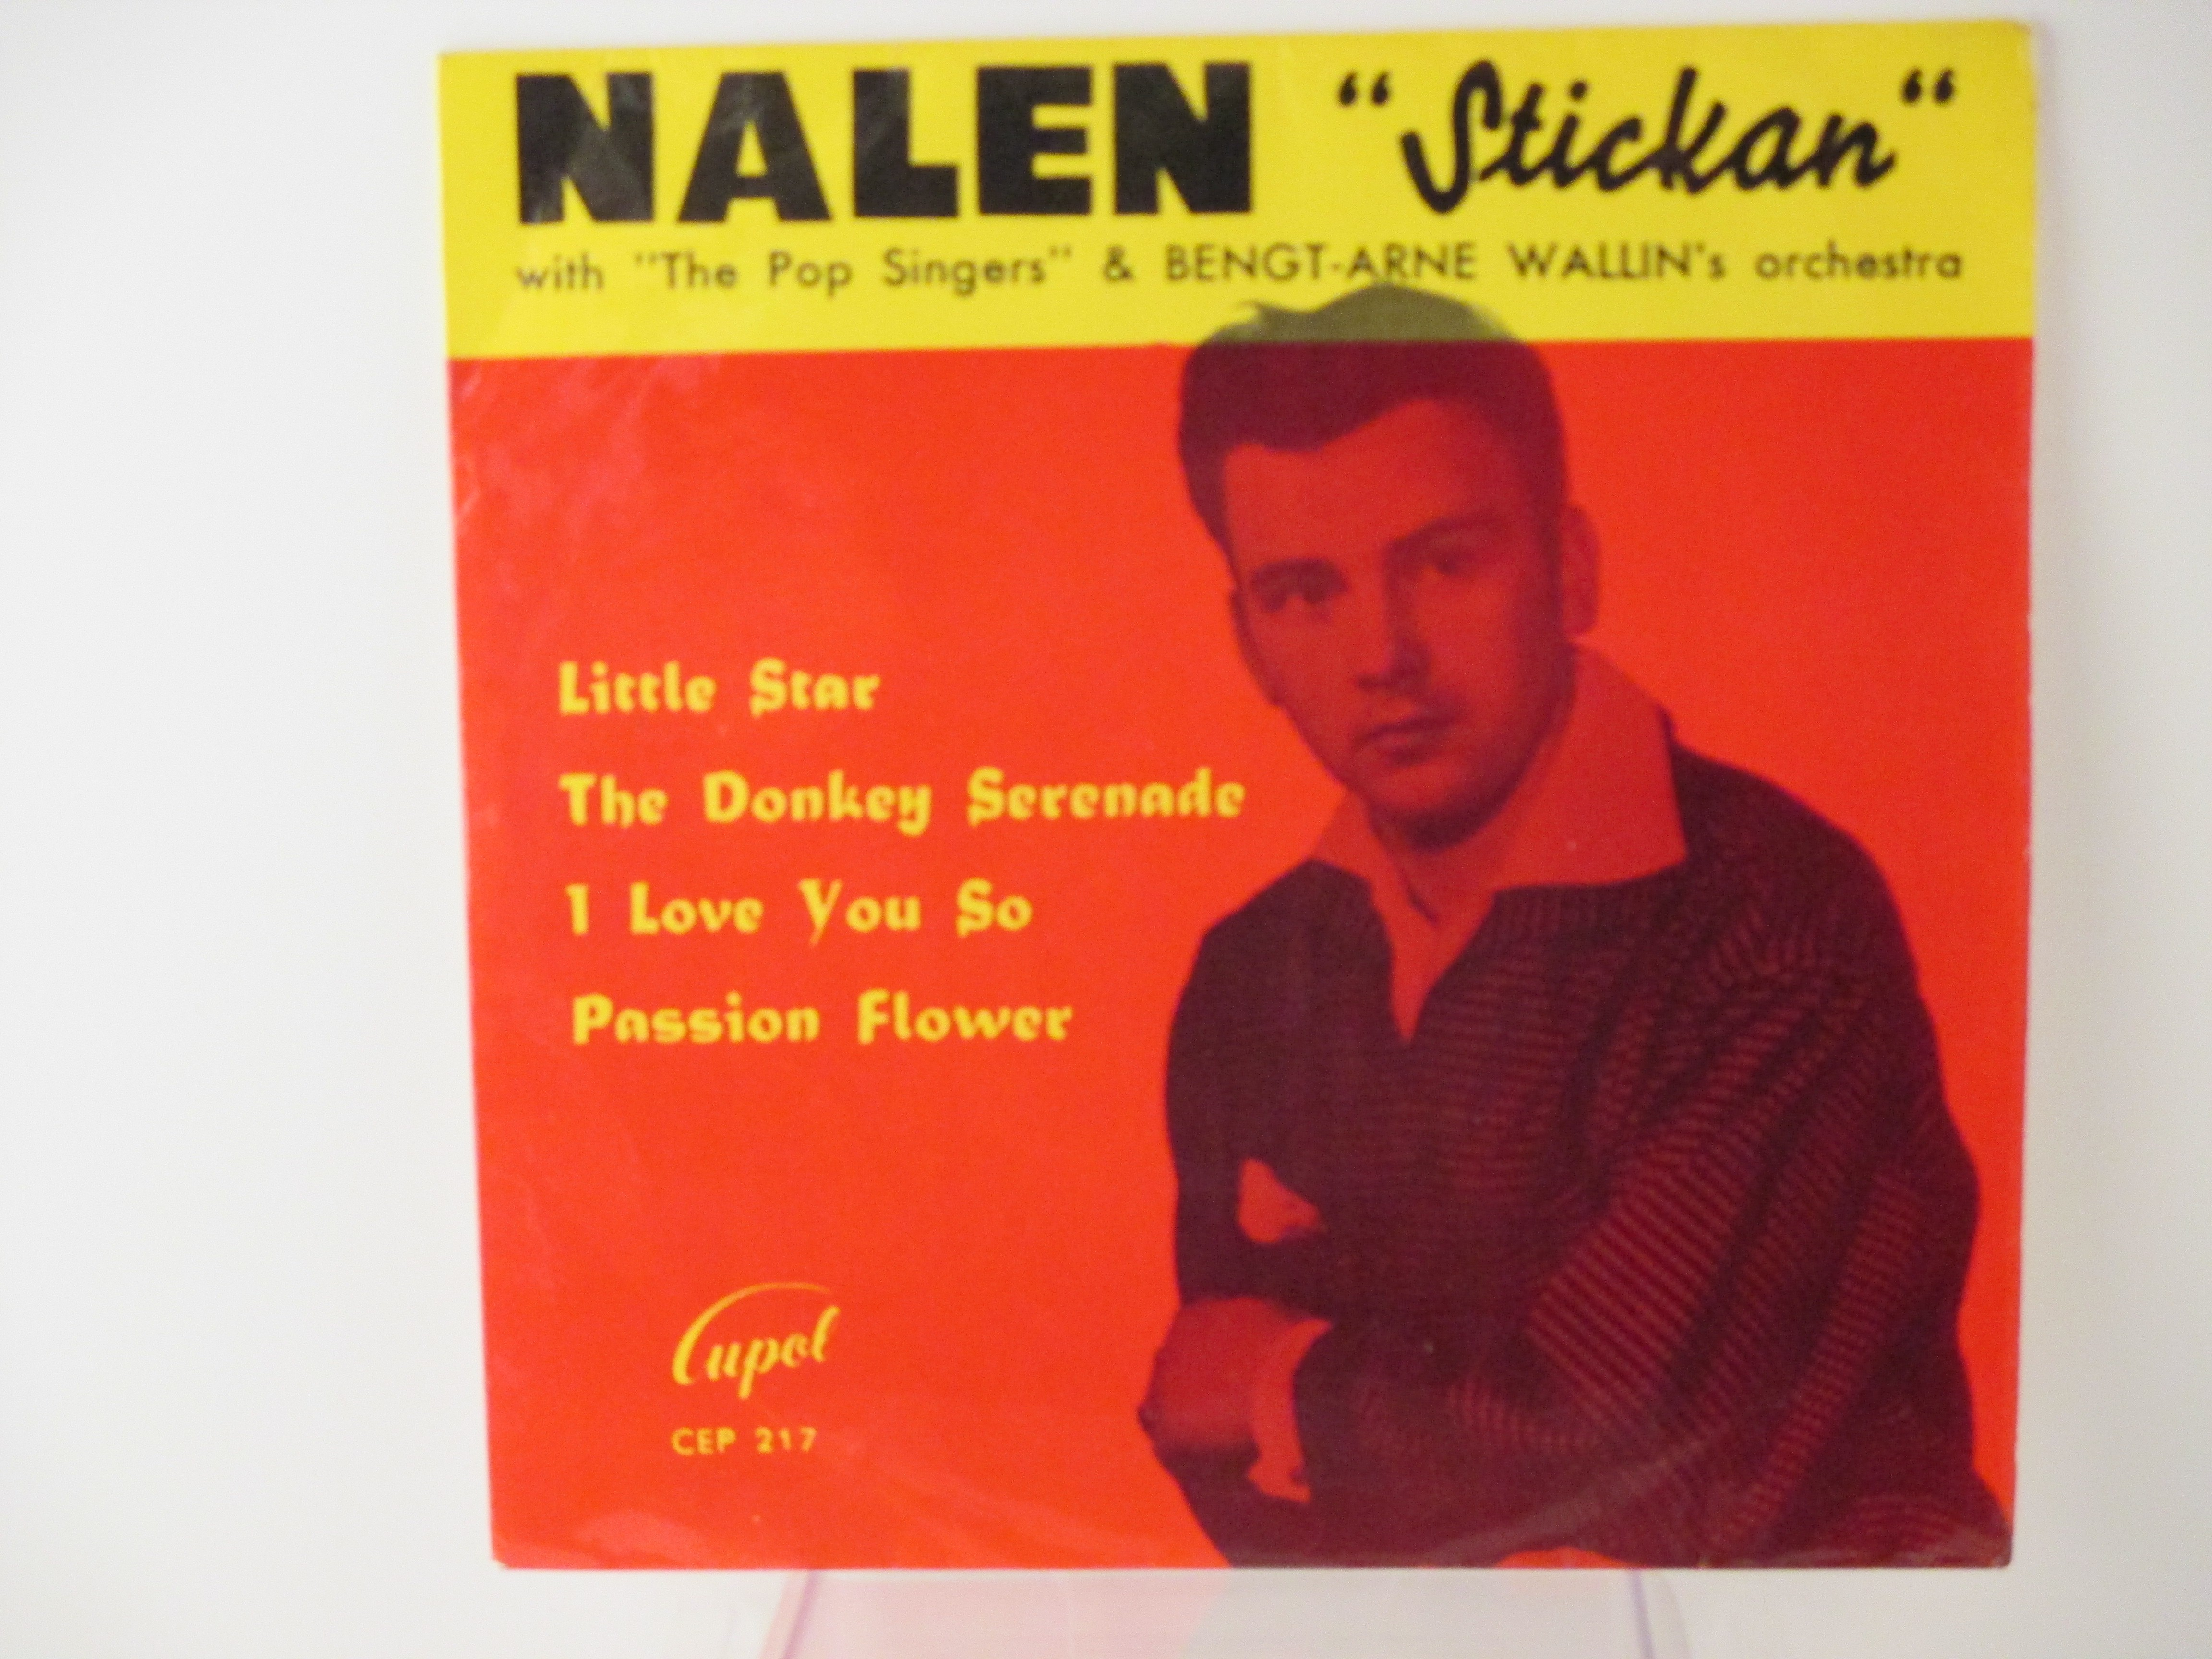 STICKAN LUNDBECK : (EP) Little star / The donkey serenade / I love you so / Passion flower